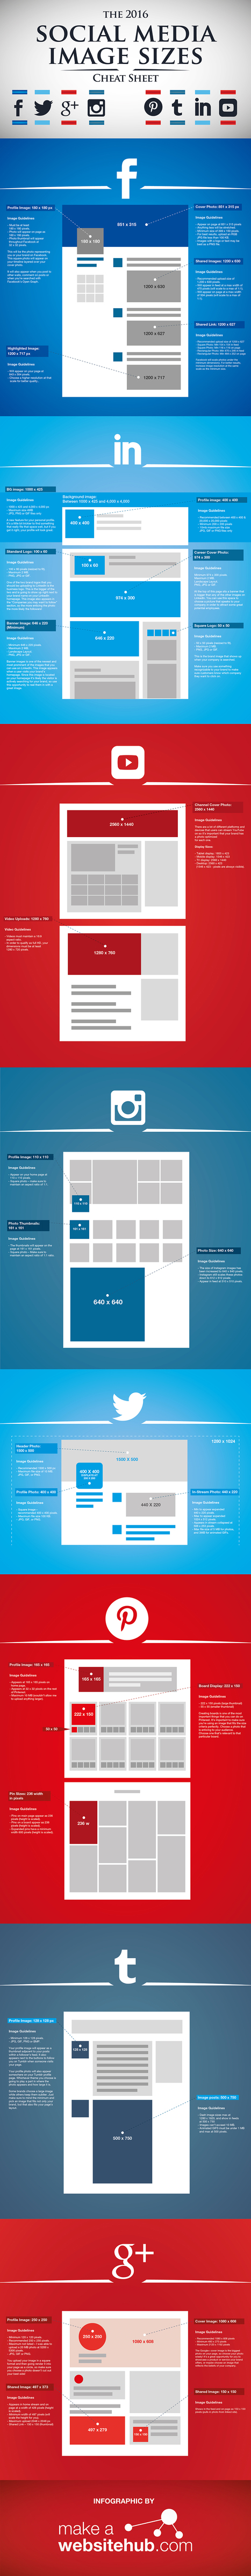 2016 Social Media Image Sizes Cheat Sheet | Font Lust & Graphic Desires | Scoop.it